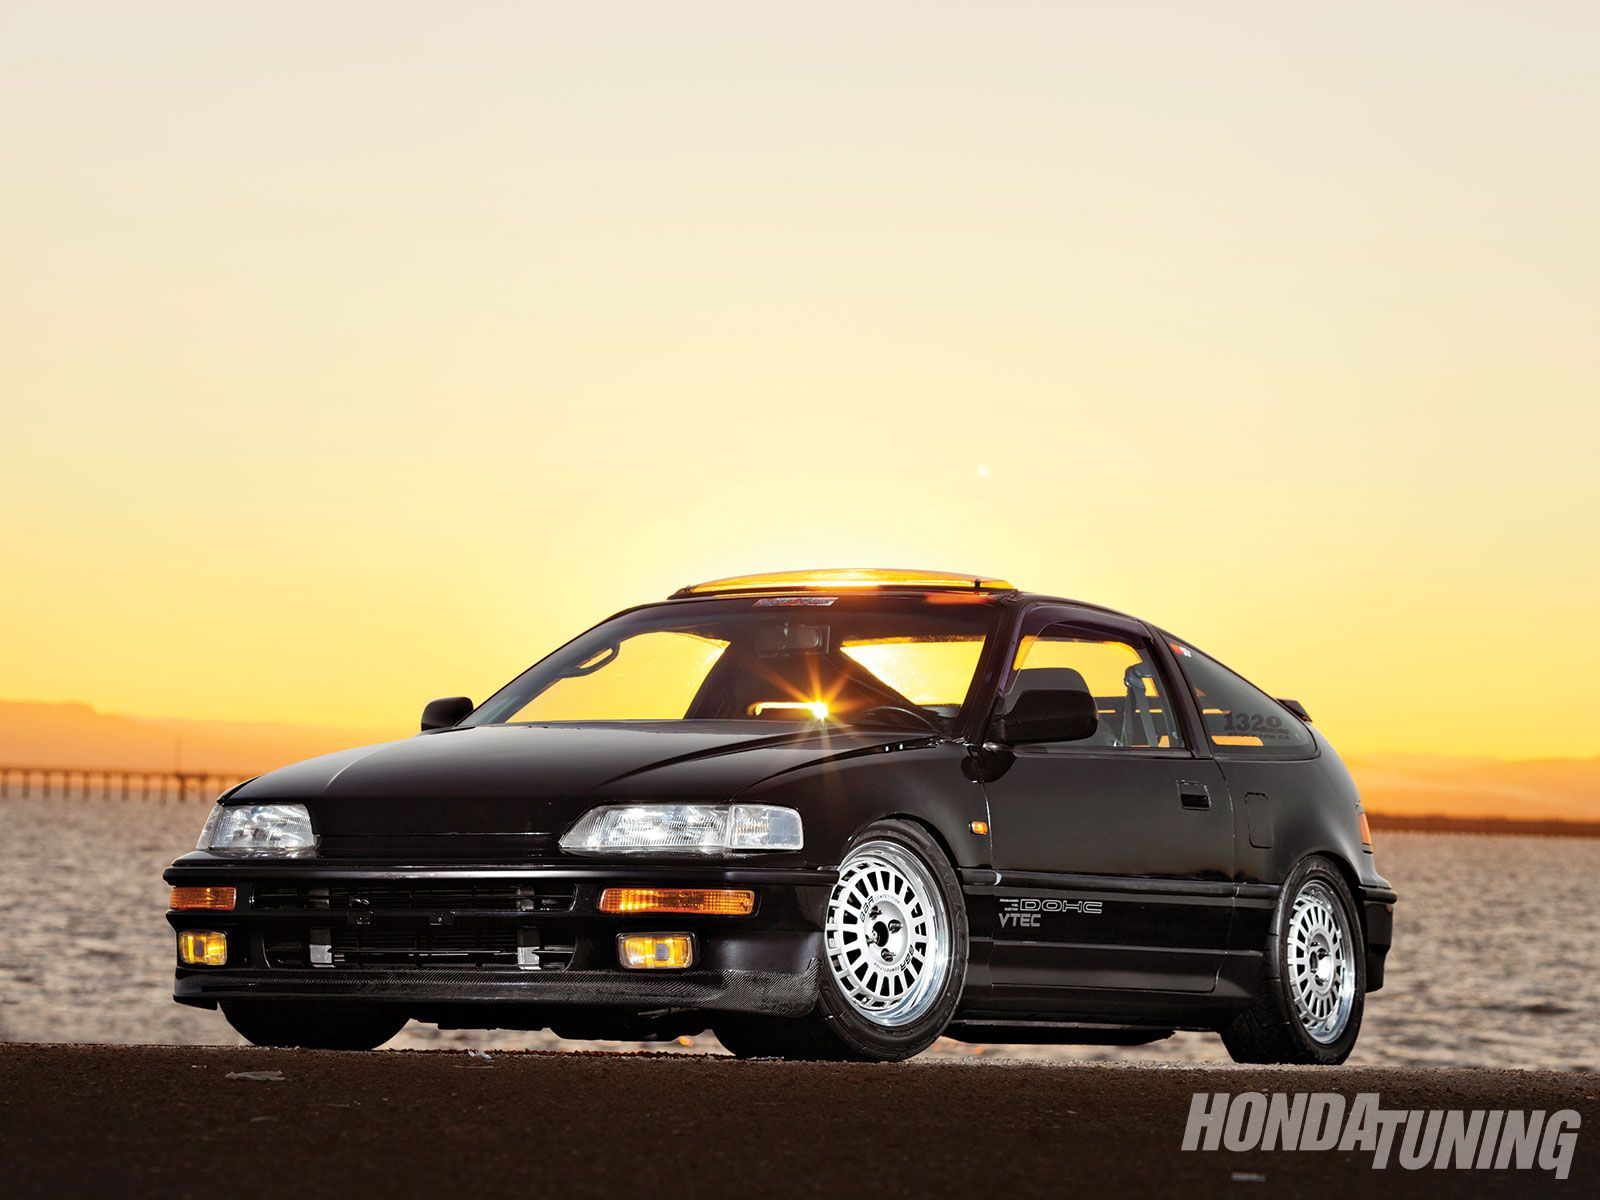 Photo 1 / 9 | 1990 Honda CRX Si JDM Frontend Conversion 01